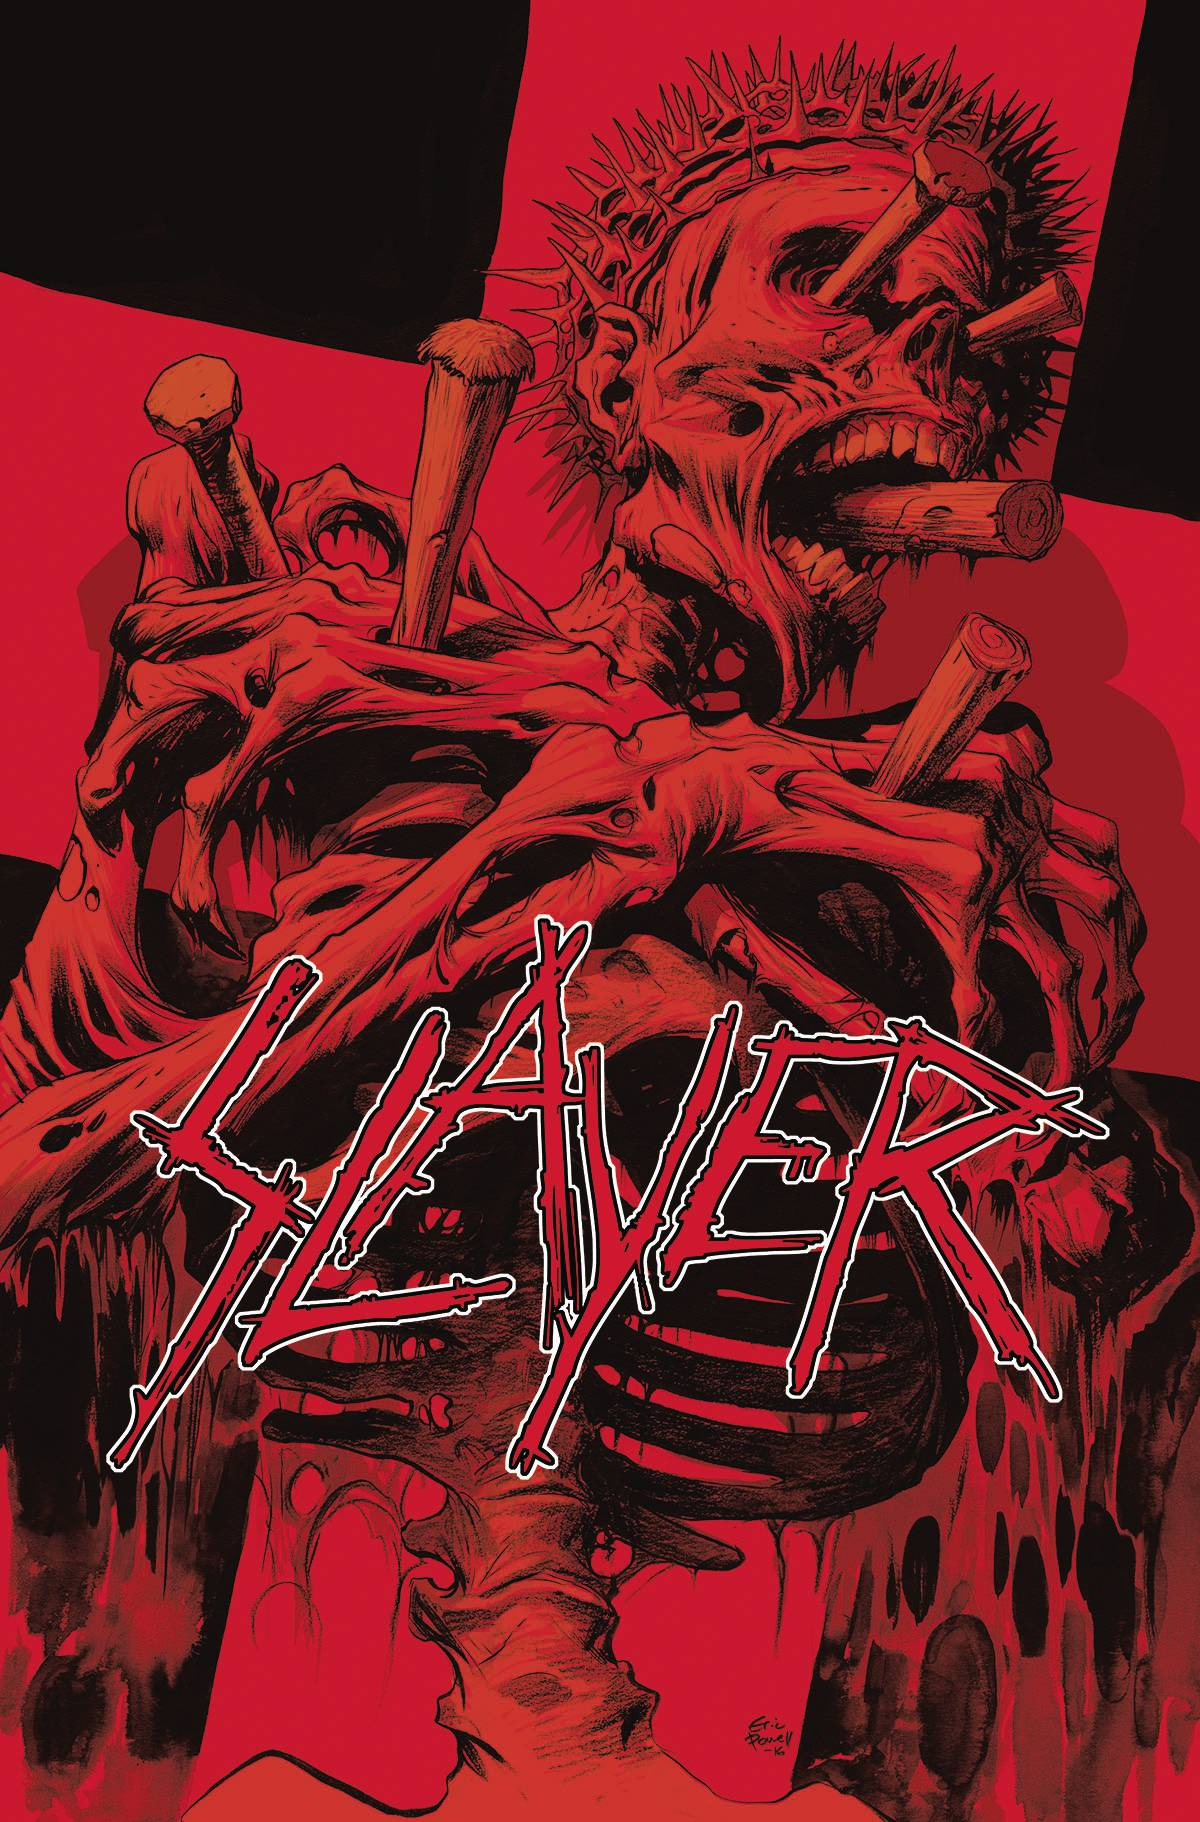 SLAYER REPENTLESS #1 (OF 3) VAR POWELL CVR